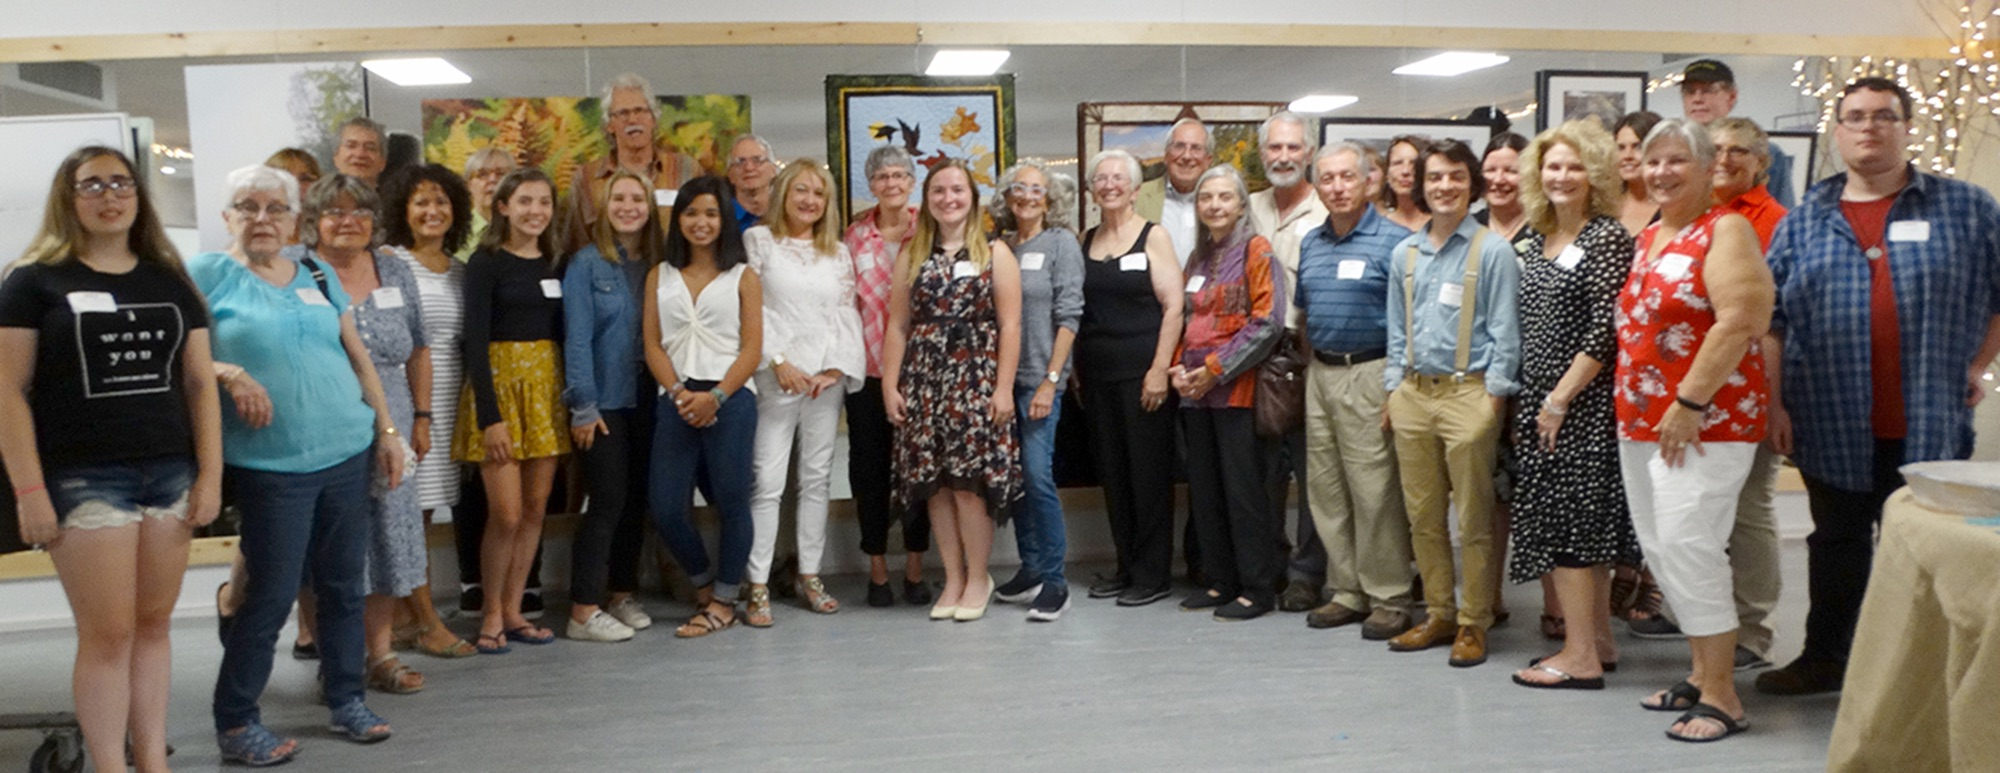 "Over three dozen local and area artists' officially opened the Tupper Lake Arts Show with a reception and ""meet the artists"" event last Wednesday. The show, which features some very exquisite and detailed artistic pieces, runs through September 7 so there's plenty of time to take in all the talent between now and then at the Tupper Arts headquarters at 106 Park Street. Jim Lanthier provided the Free Press this week with this great group shot of most of the artists, photographers and sculptors participating."